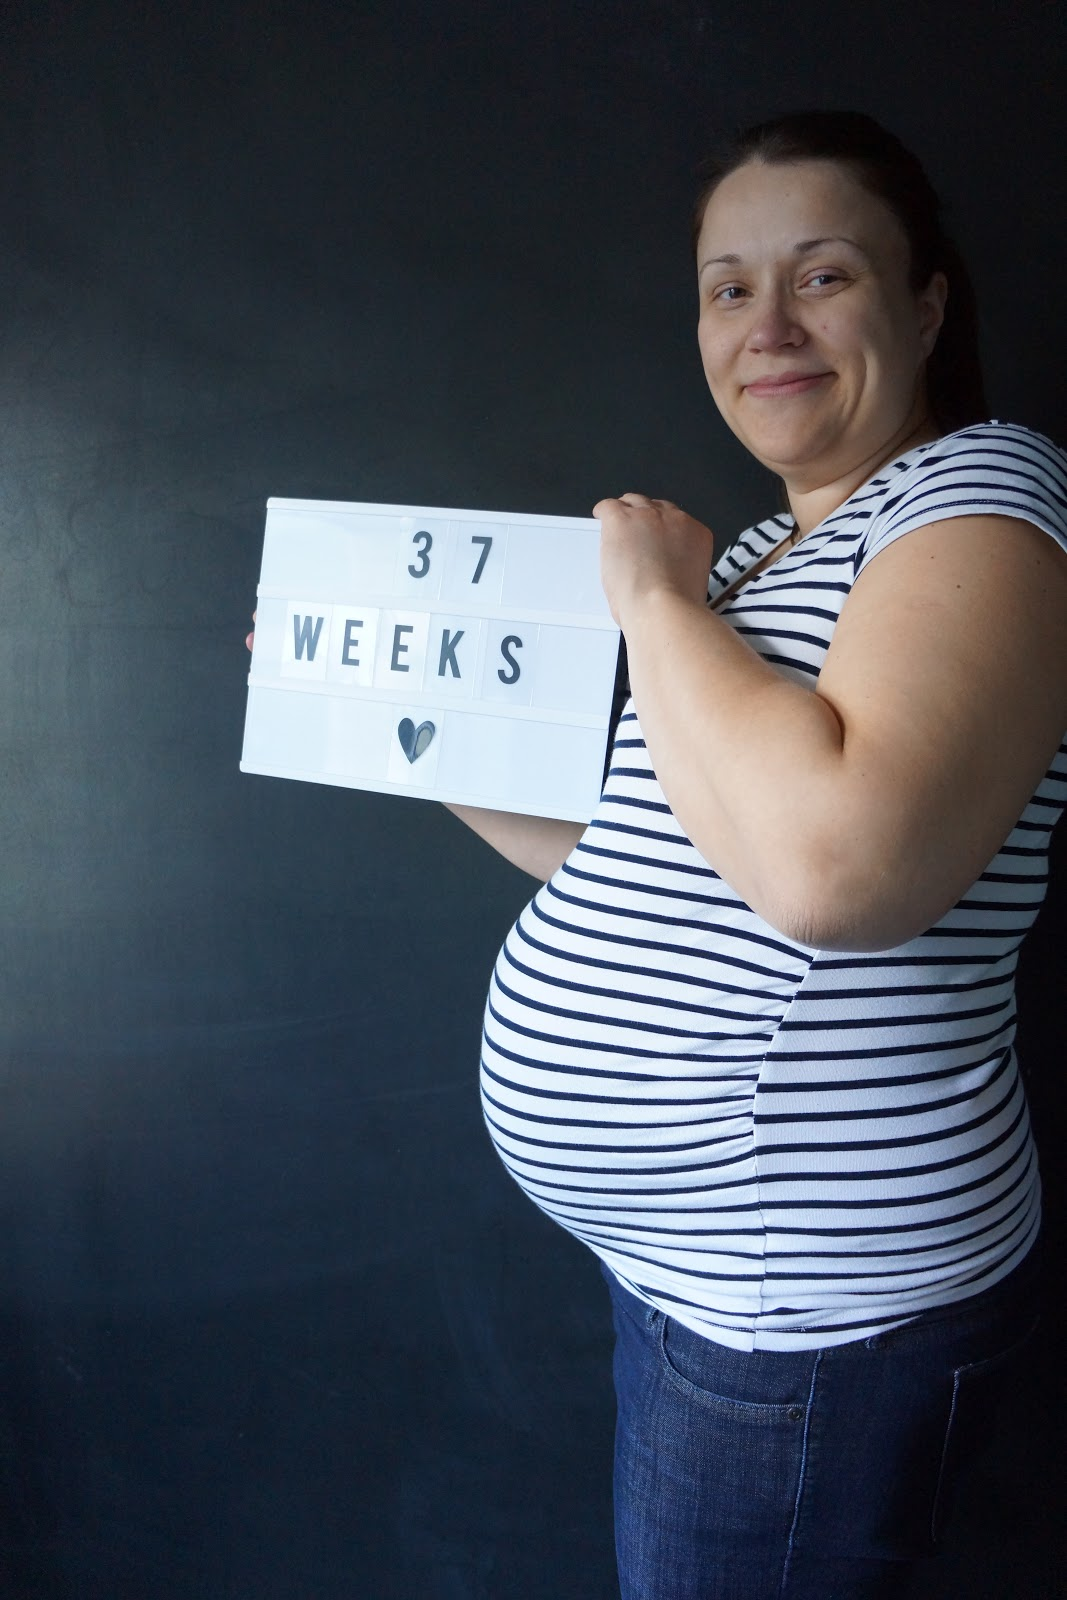 mum holding a light box with 37 weeks written on it